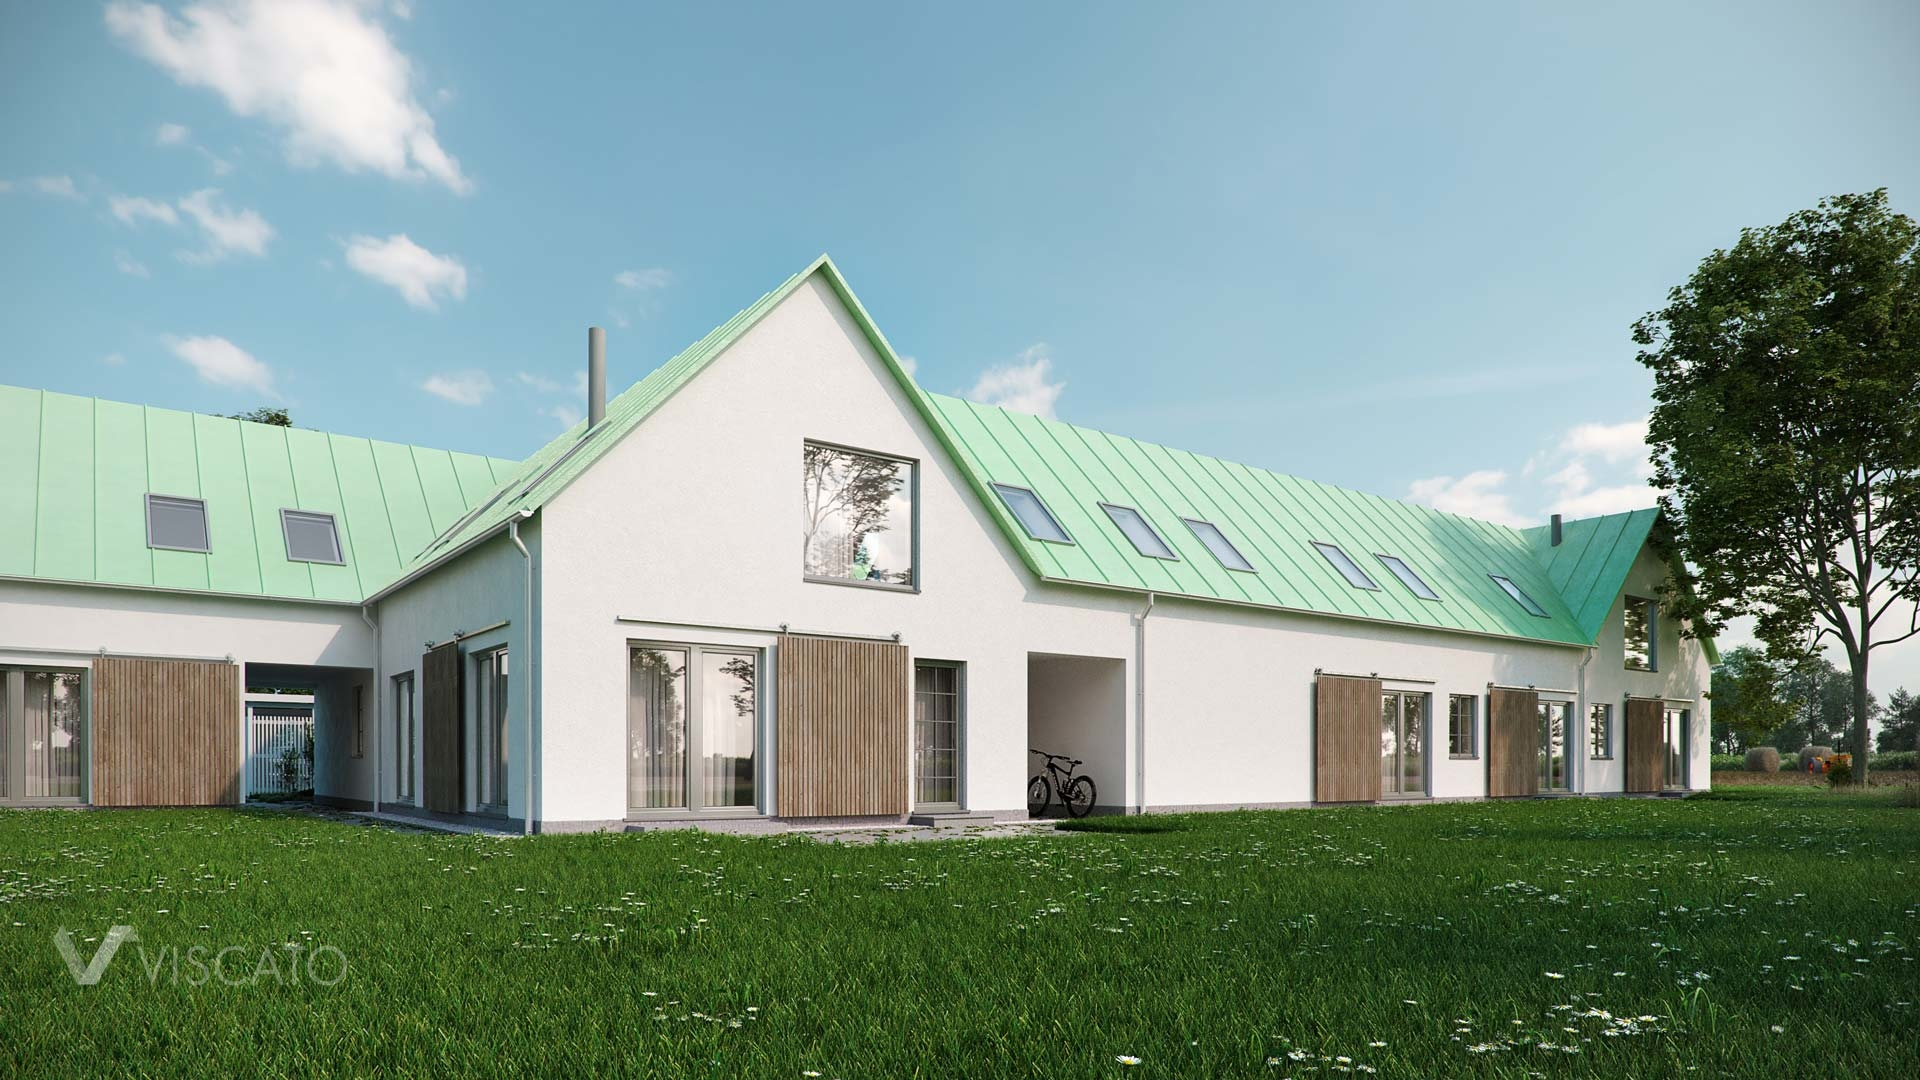 Viscato's 3D renderings of a housing estate- front view